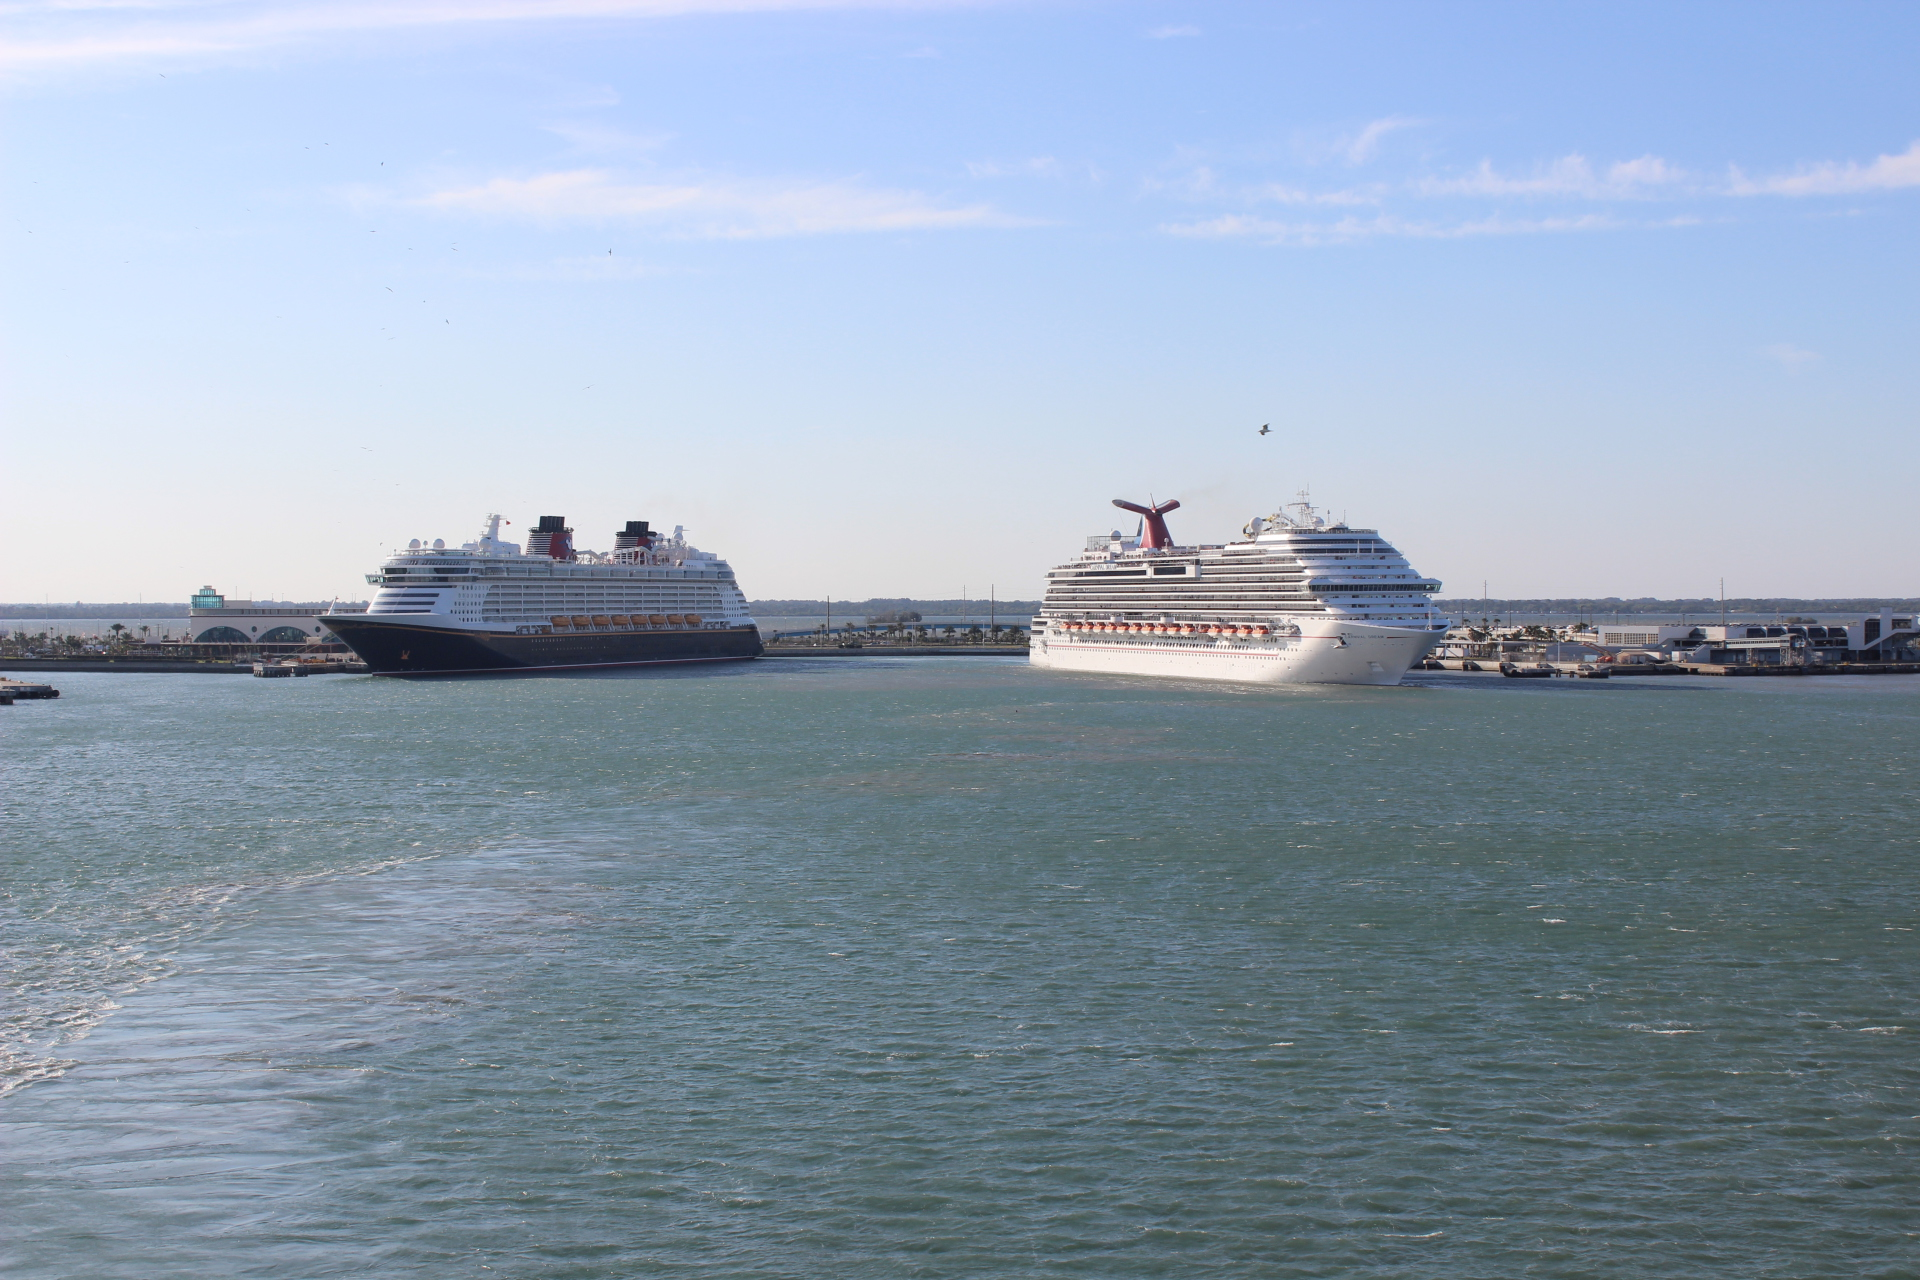 Sailing from Port Canaveral Florida